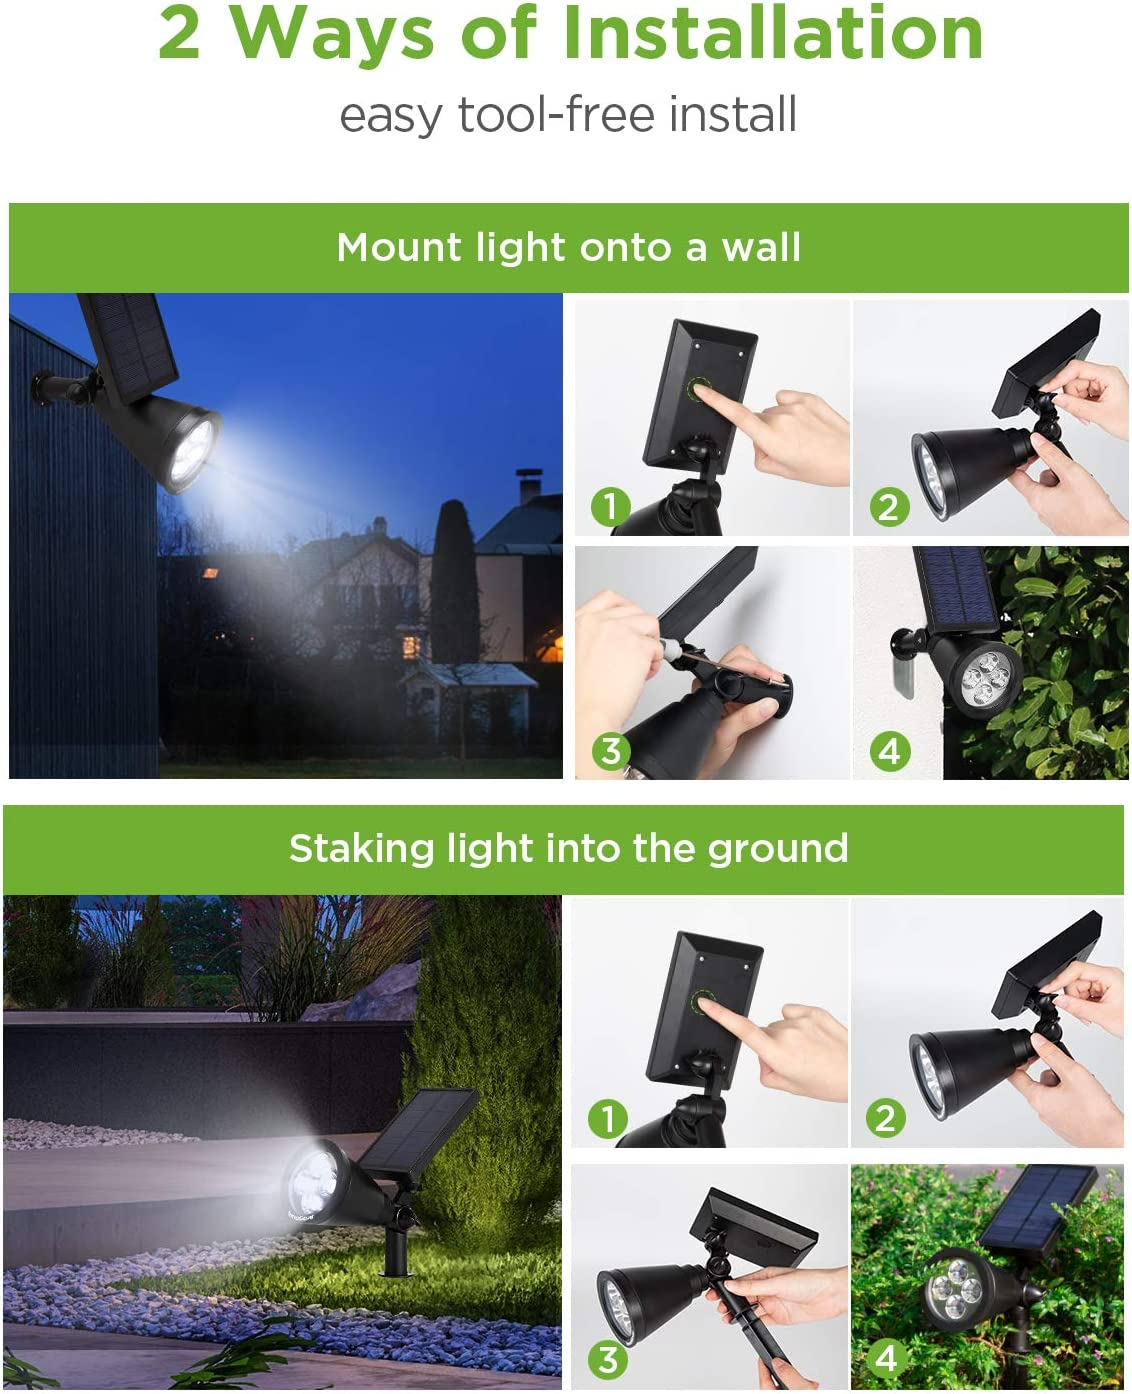 InnoGear Solar Lights Outdoor, Upgraded Waterproof Solar Powered Landscape Spotlights 2-in-1 Wall Light Decorative Lighting Auto On/Off for Pathway Garden Patio Yard Driveway Pool, Pack of 4 (White) - -